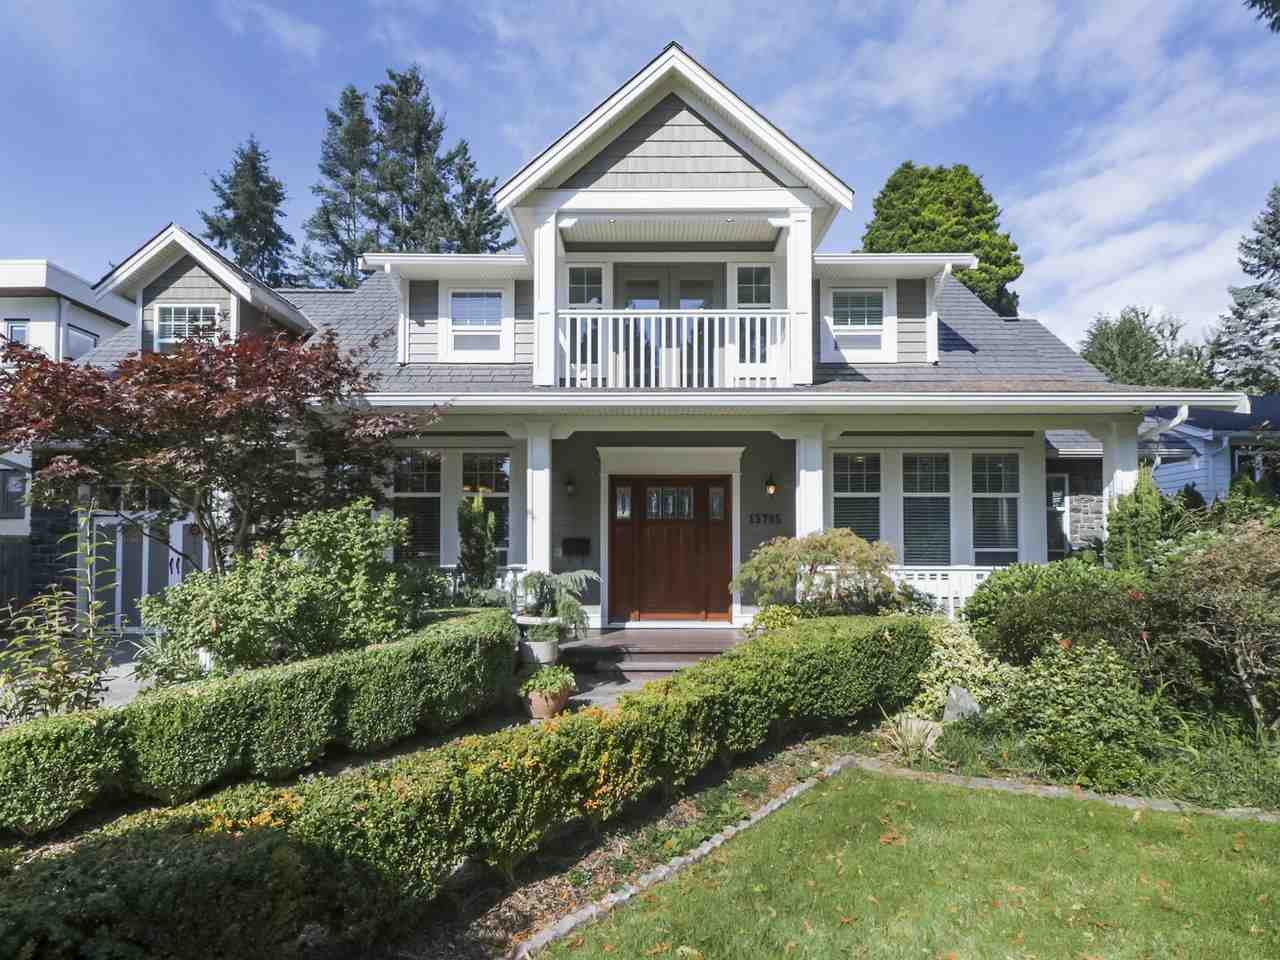 Photo 2: Photos: 13785 MARINE Drive: White Rock House for sale (South Surrey White Rock)  : MLS®# R2425352